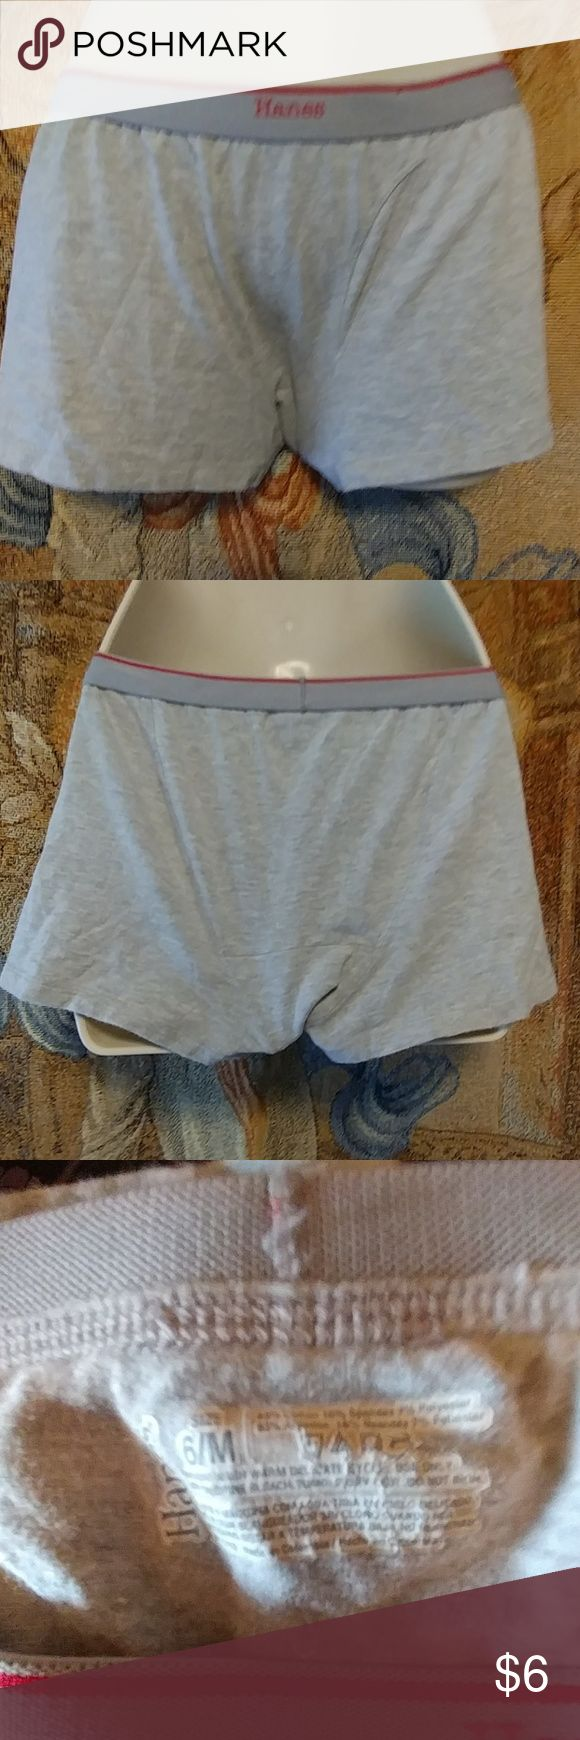 ??  WOT?? Hanes Boy Boxers For Women Hanes boy boxers for women. .new never worn. Hanes Shorts